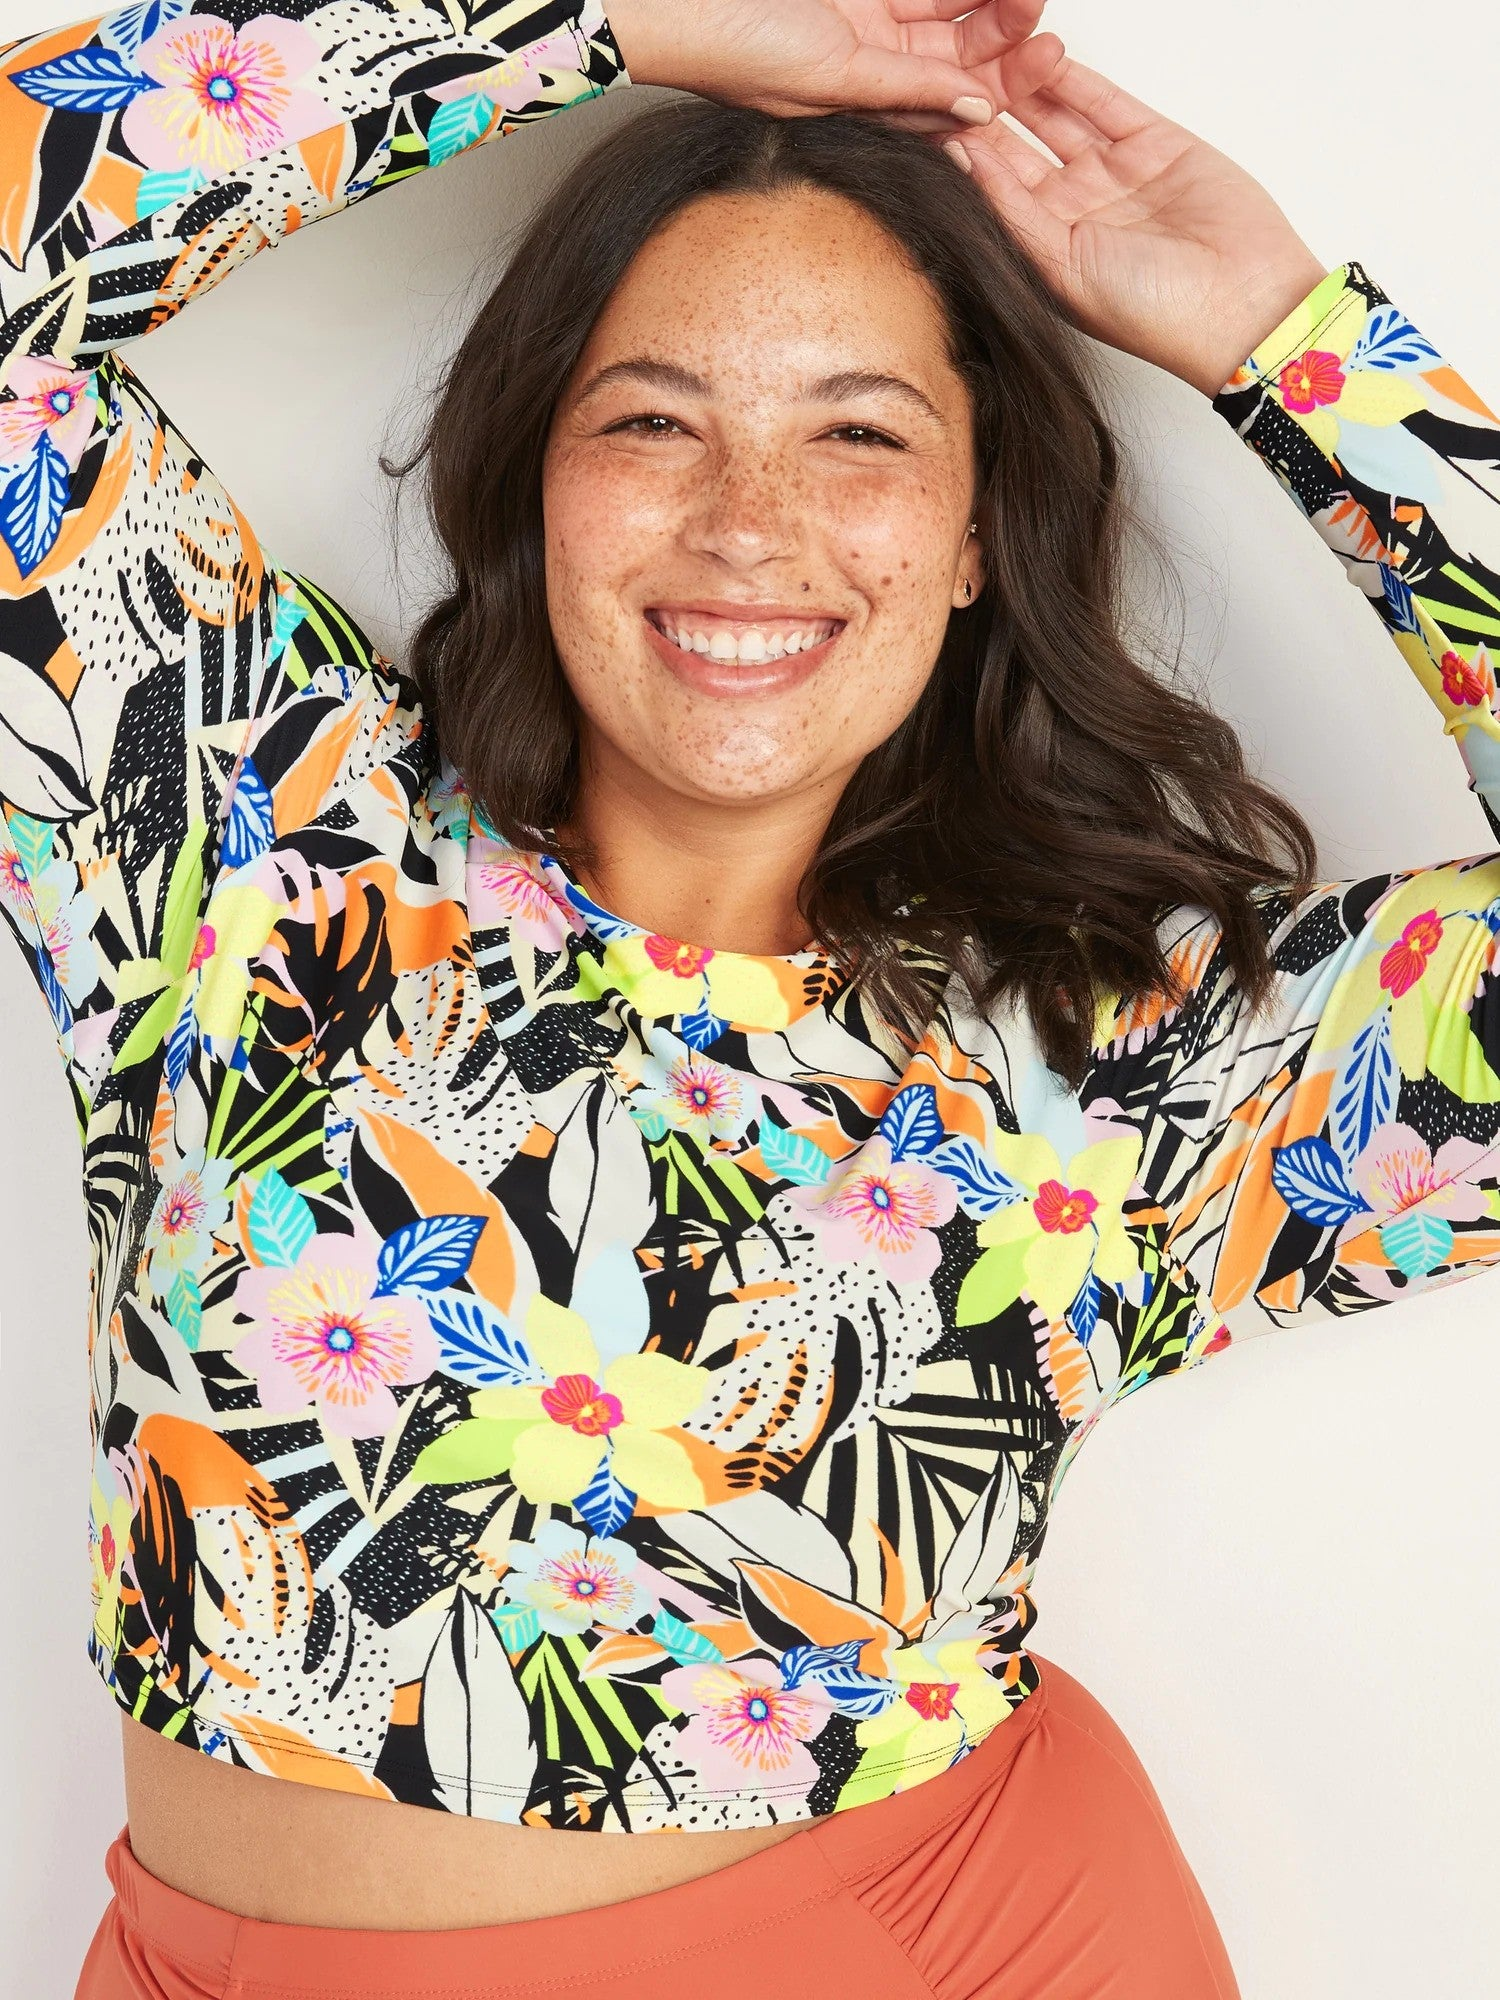 model wearing top with illustrated monstera leaves, hibiscus flowers, palm leaves, and orchid flowers in black, orange, pink, blue, yellow